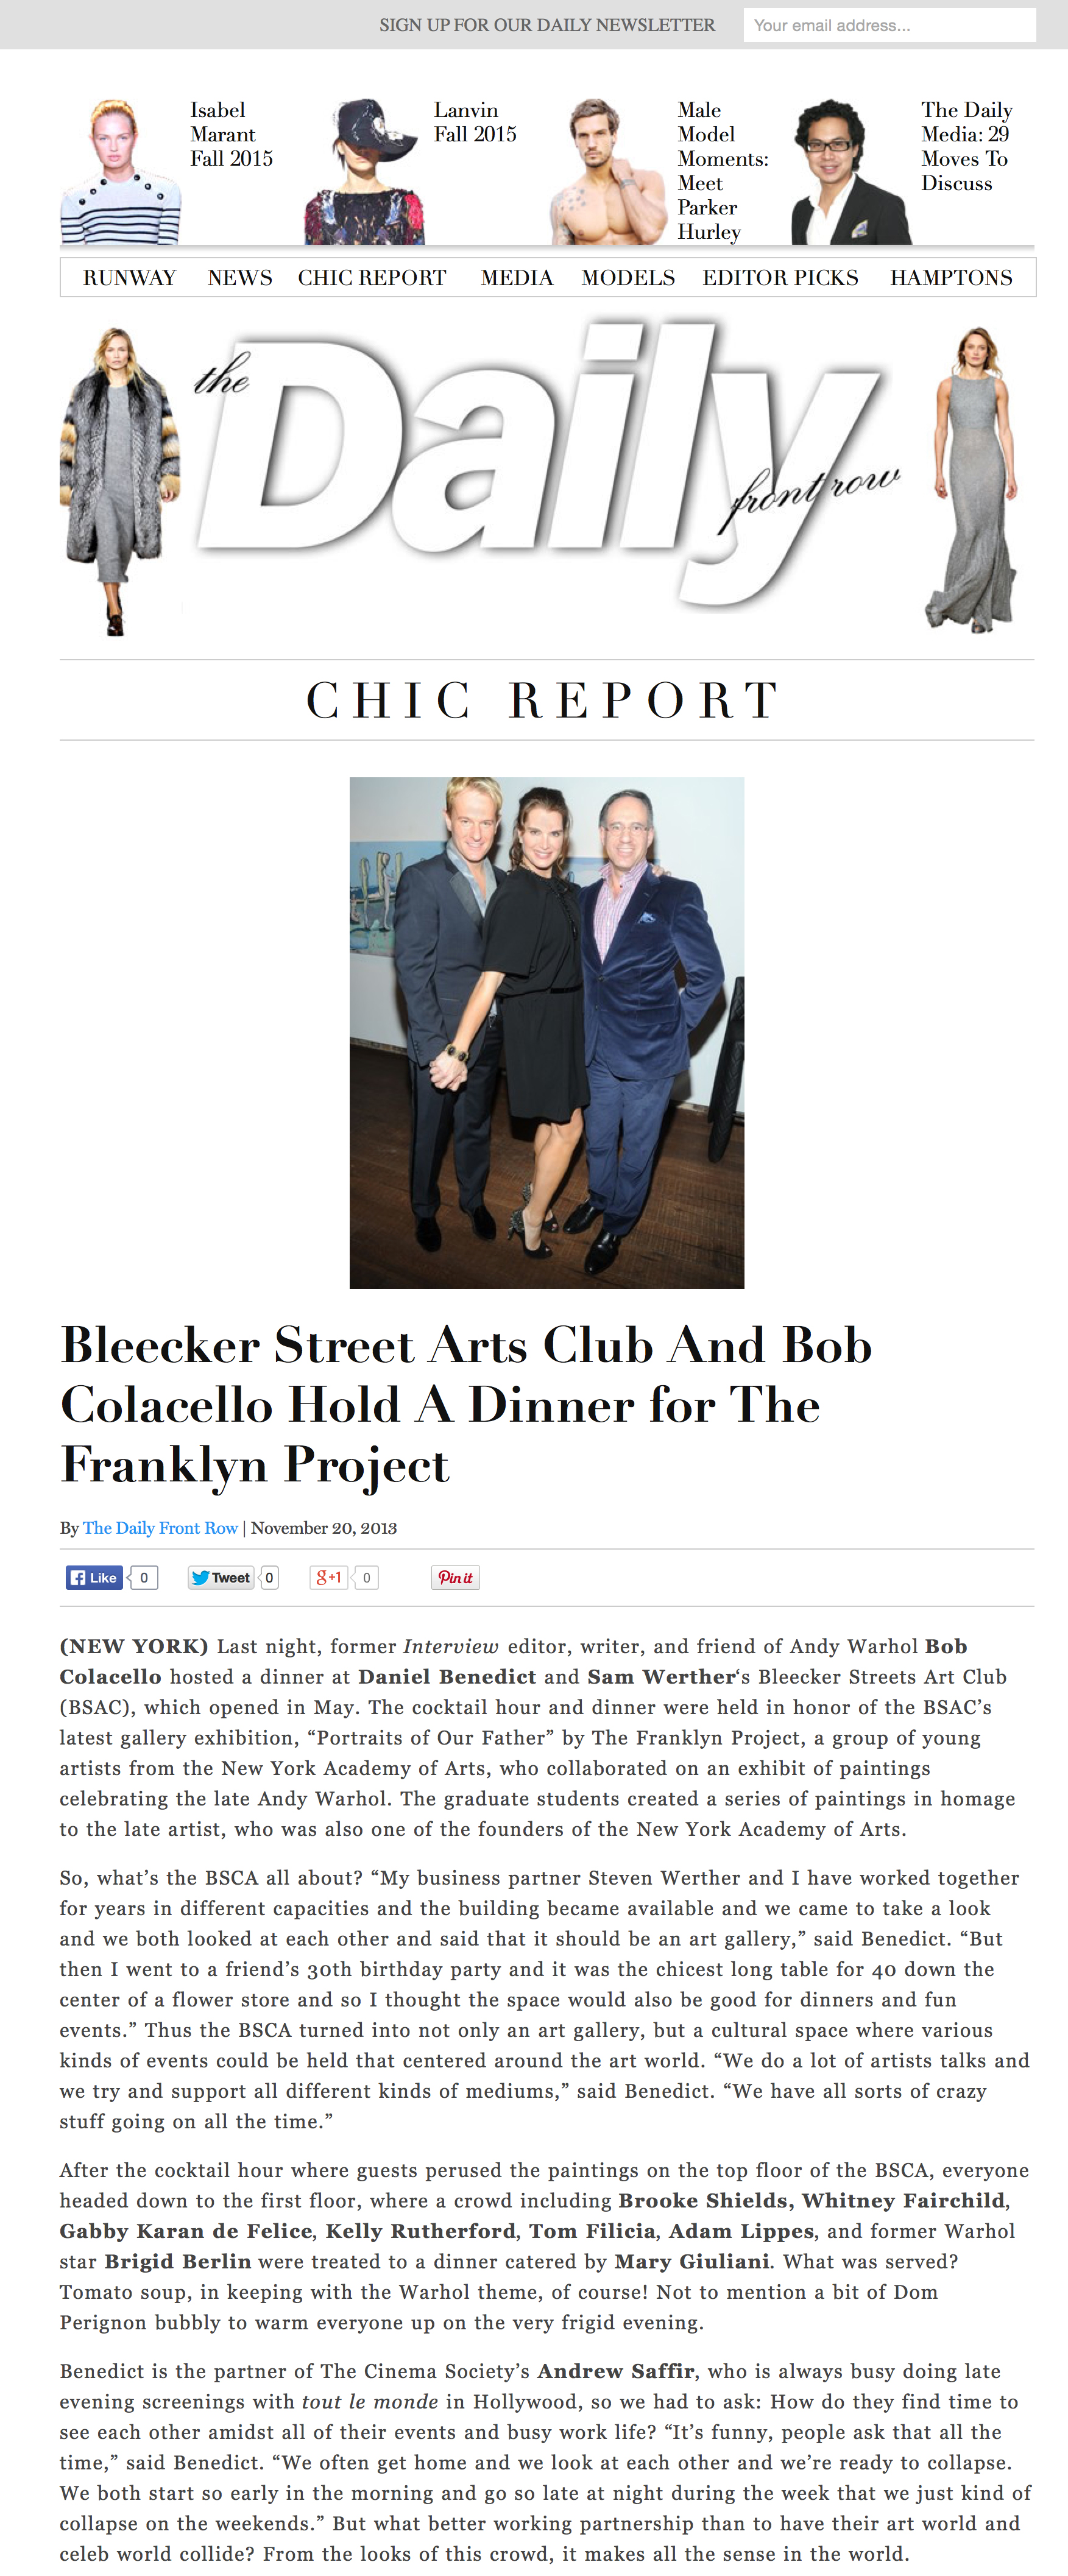 Daily Front Row: Bleecker Street Arts Club And Bob Colacello Hold A Dinner for The Franklyn Project